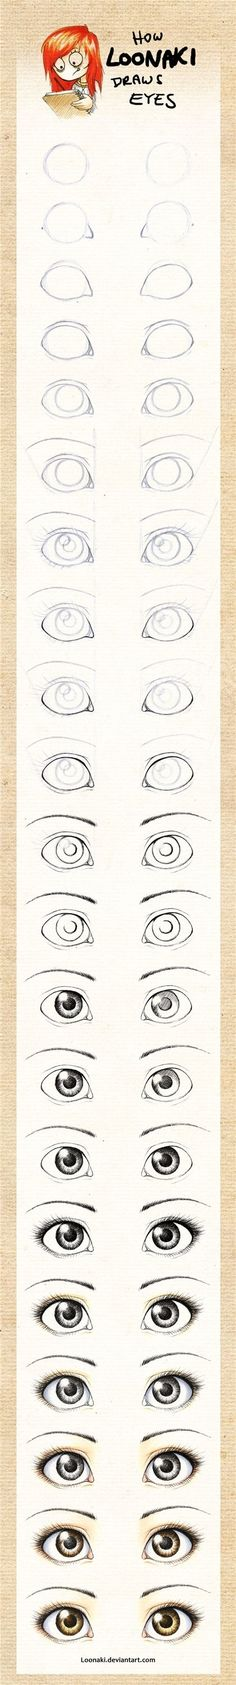 How to drawing eyes by mystra